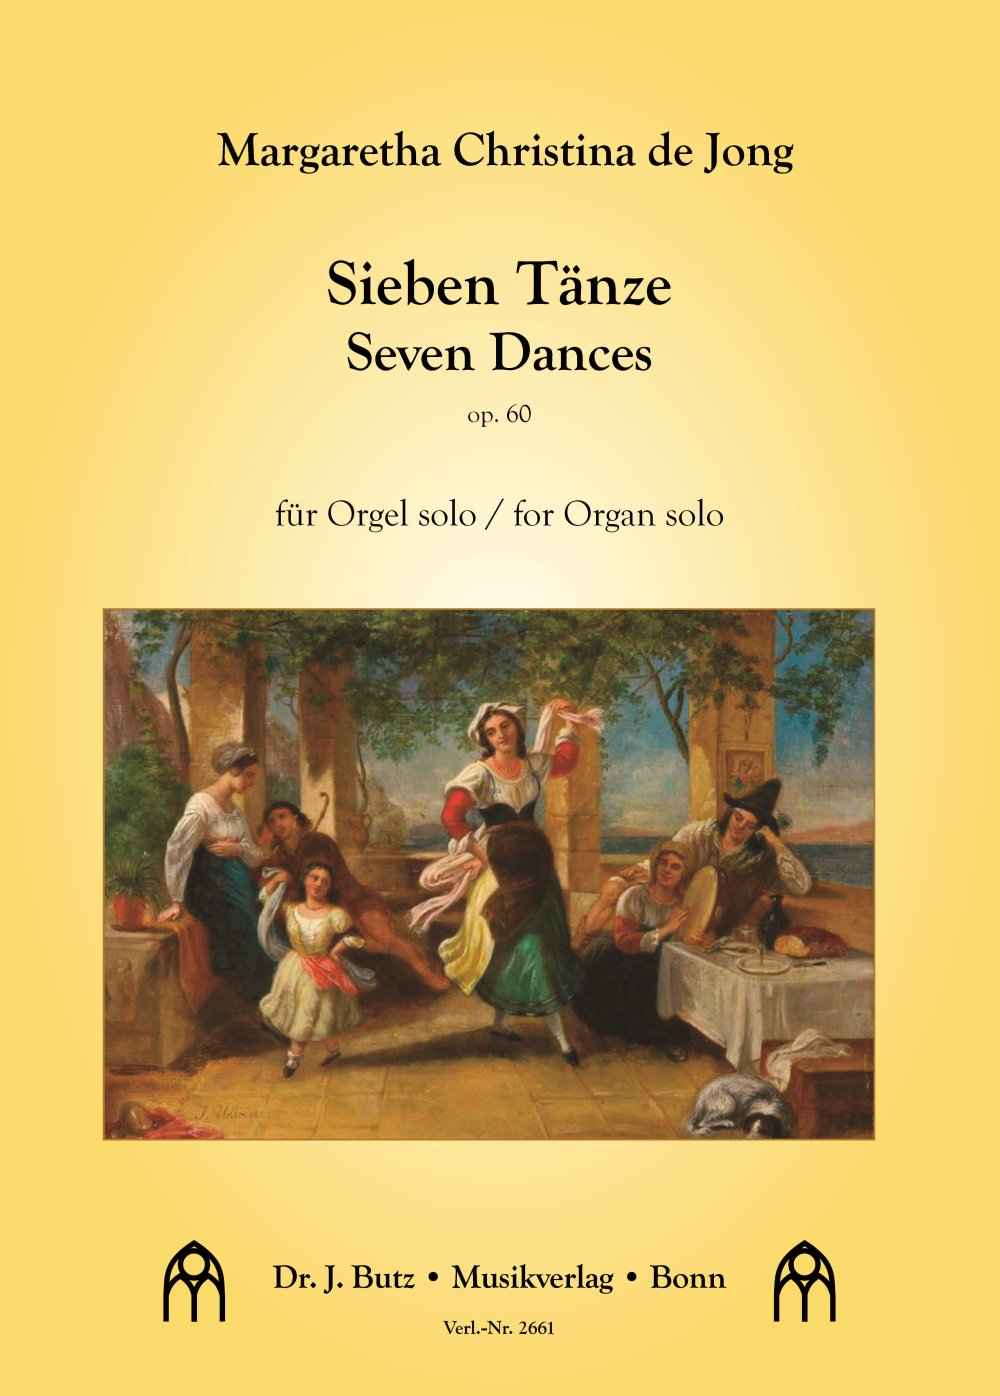 Sieben Tänze (Seven Dances)